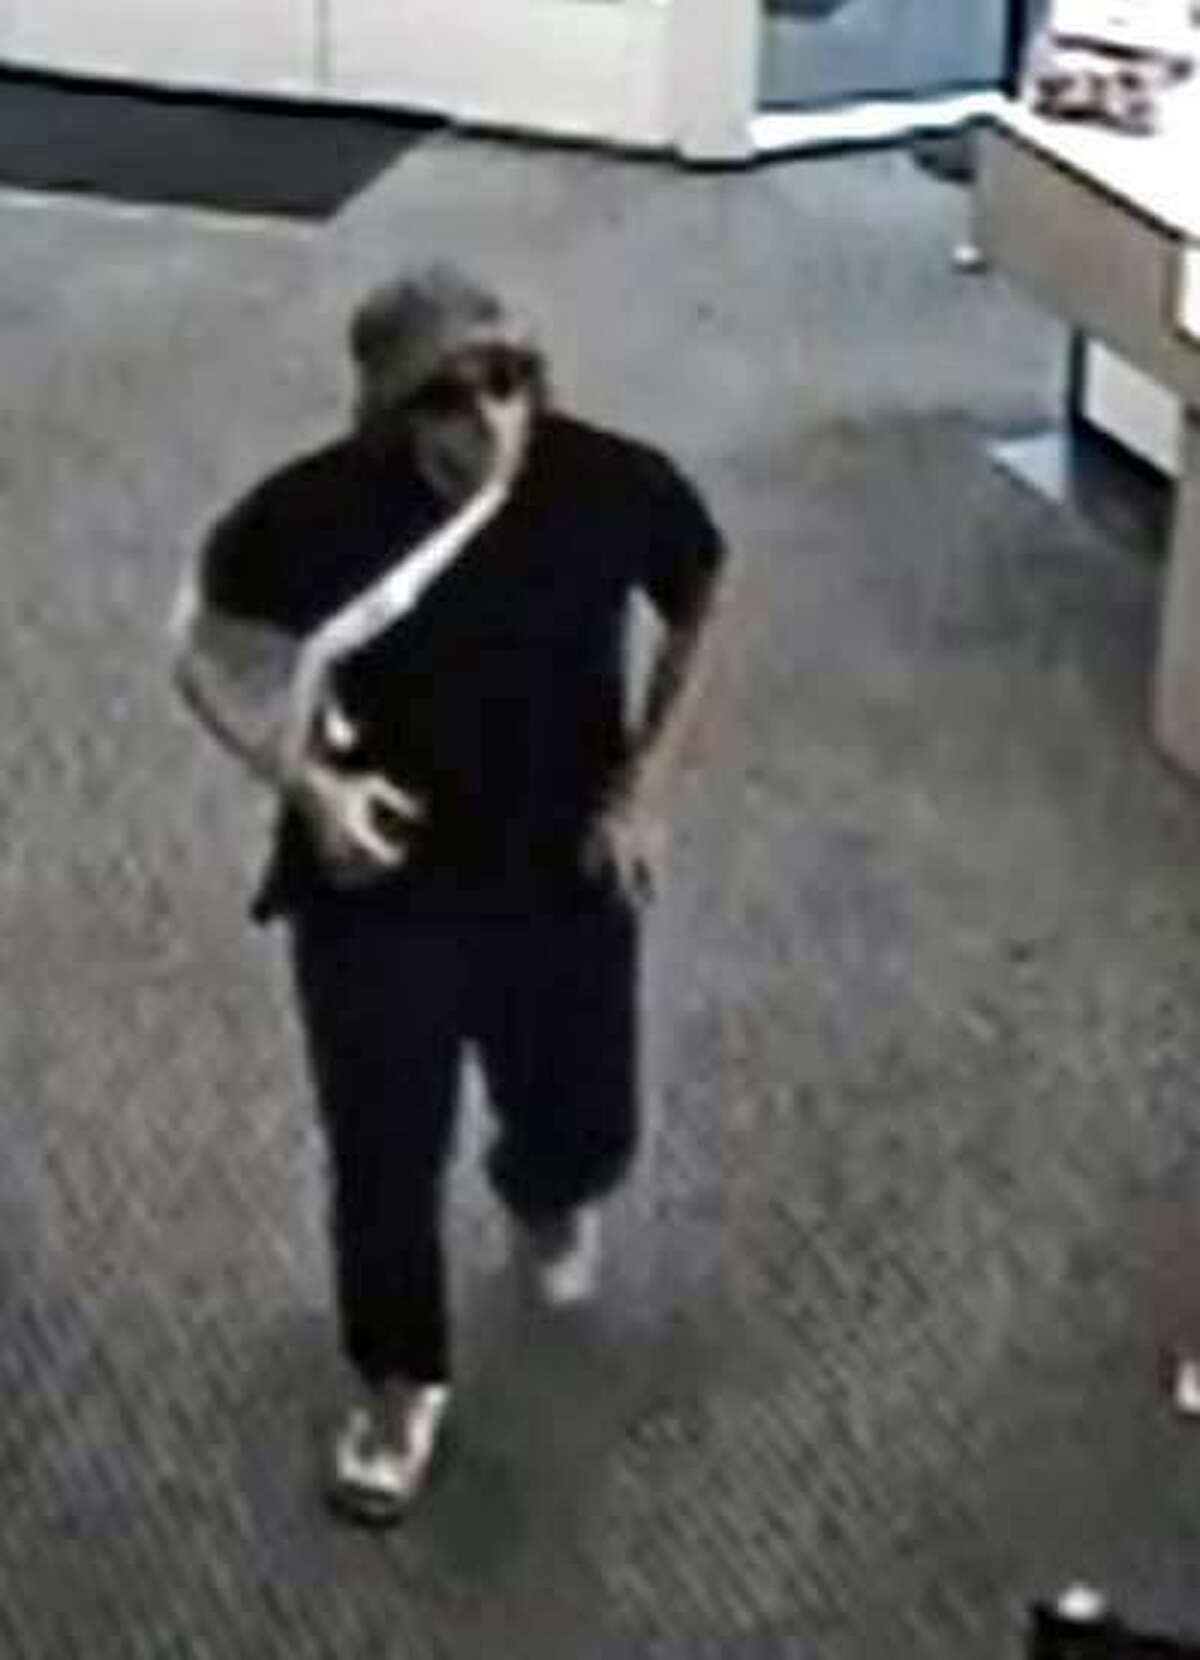 Officers responded to the People?'s Bank at 435 Main Street in Monroe, Conn., around 6 p.m. Thursday, Sept. 14, 2017, for a hold-up alarm, police said. Employees told police that just before the bank closed for the day, a man entered and demanded cash from a teller.